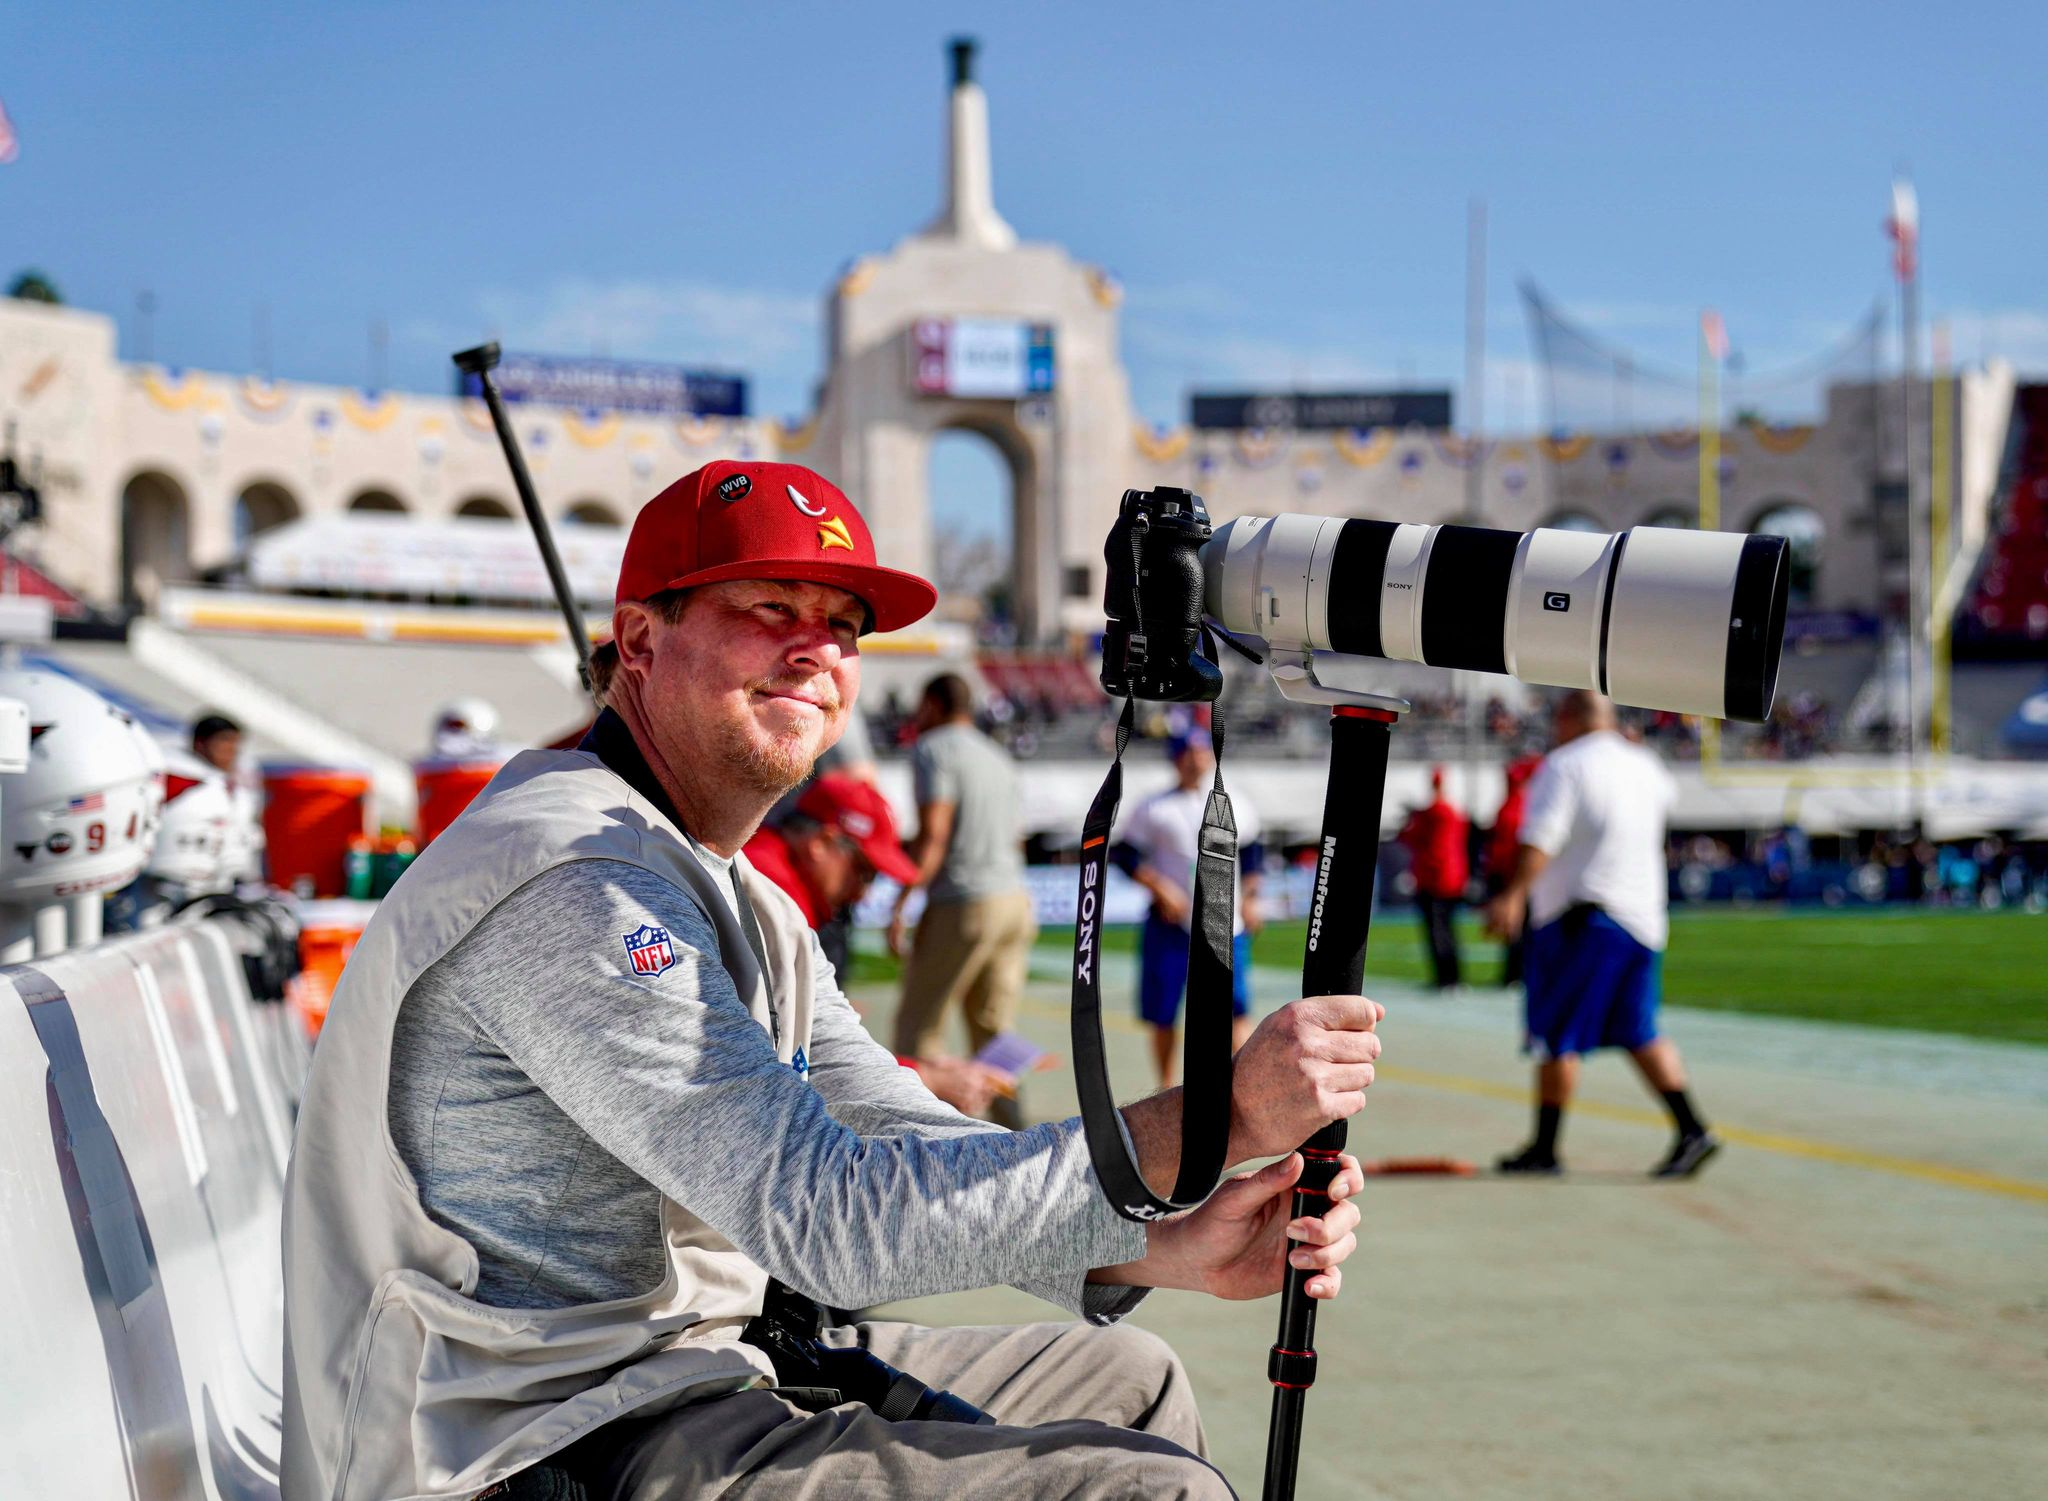 Sony Artisan and Pro Sports Photographer, Gene Lower